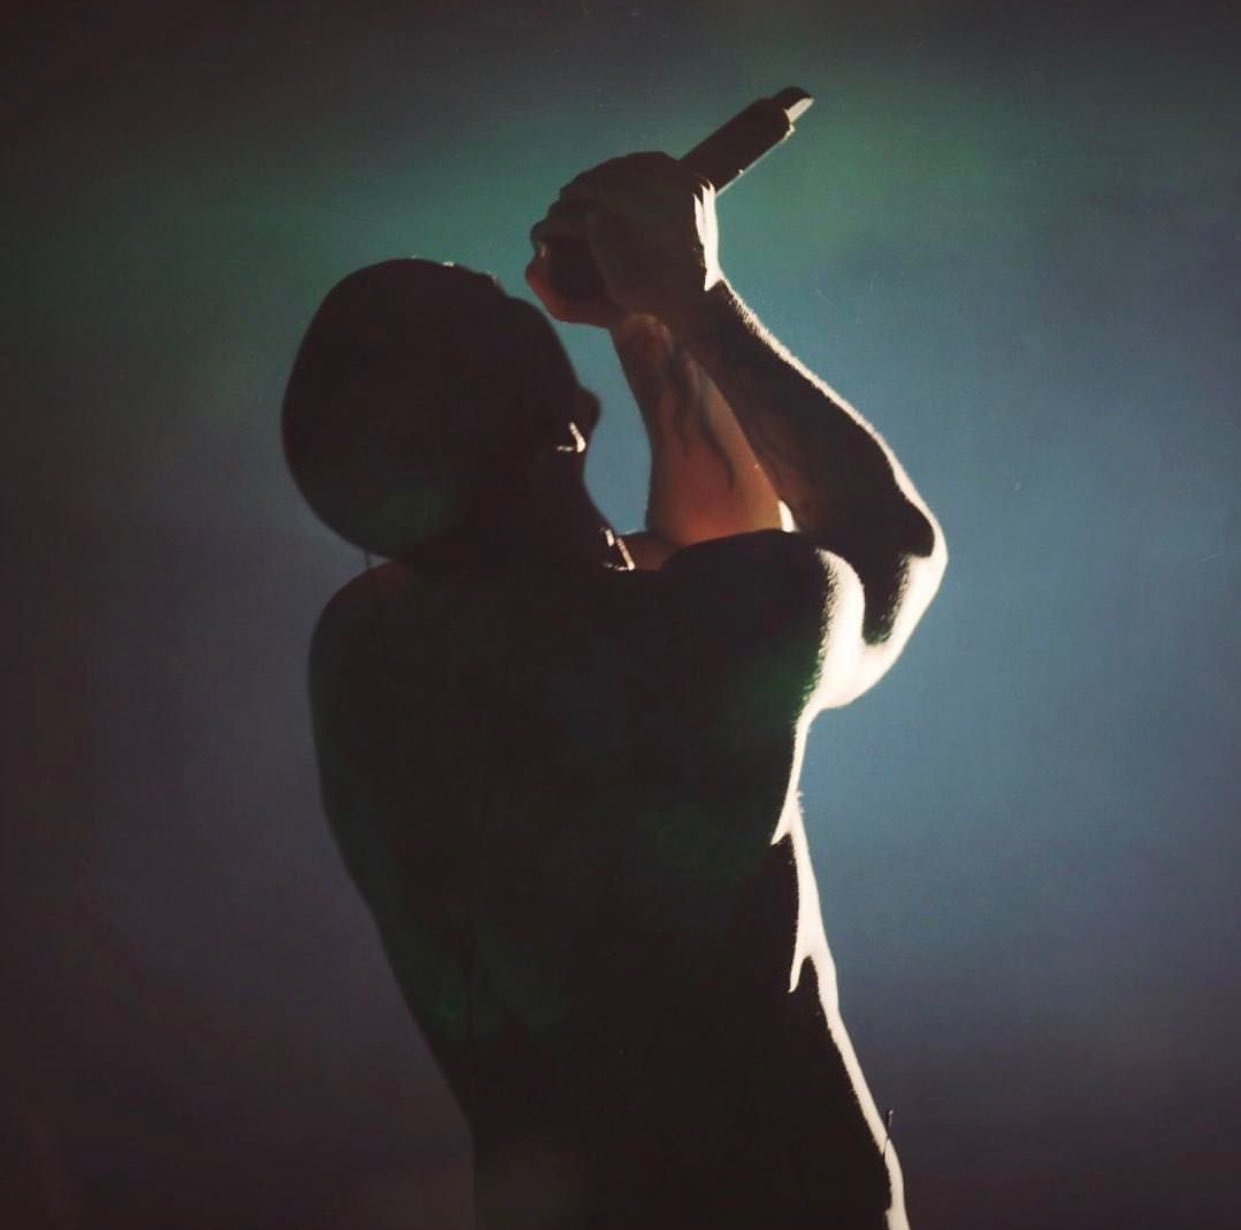 So sad to hear about #chesterbennington suicide. His voice and talent will not be forgotten. #linkinpark https://t.co/yTXz0v3aFu